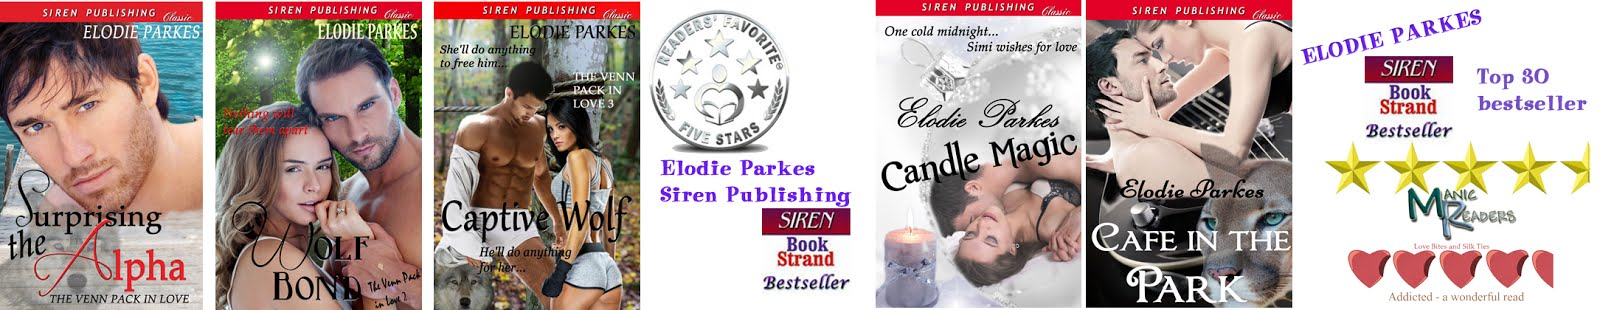 Elodie Parkes paranormal romance from Siren